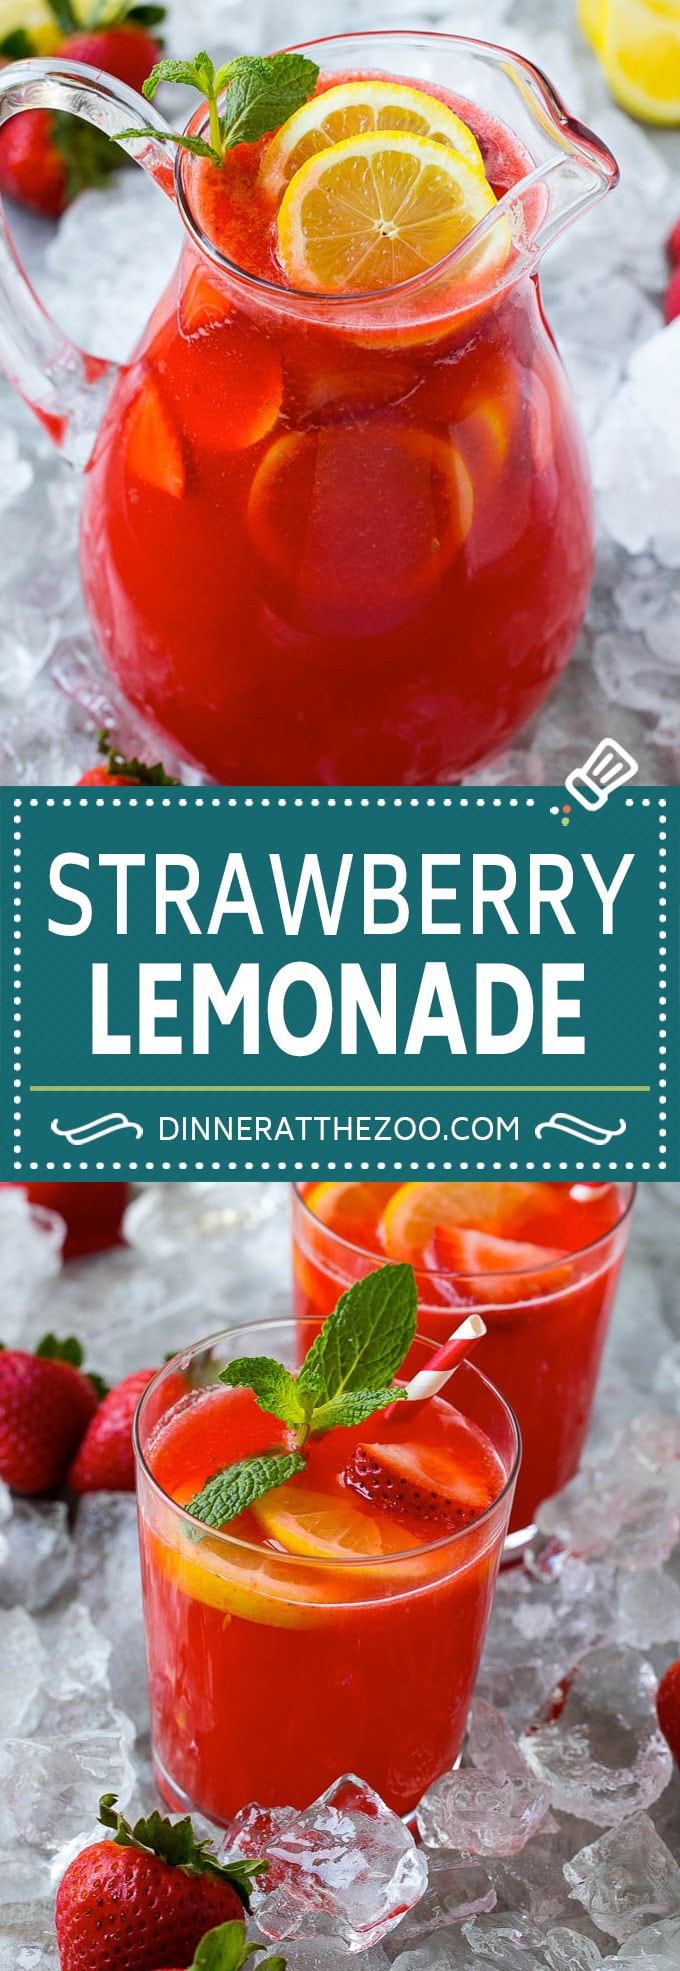 Strawberry Lemonade Recipe | Homemade Lemonade | Strawberry Drink Recipe #lemonade #strawberries #drink #dinneratthezoo